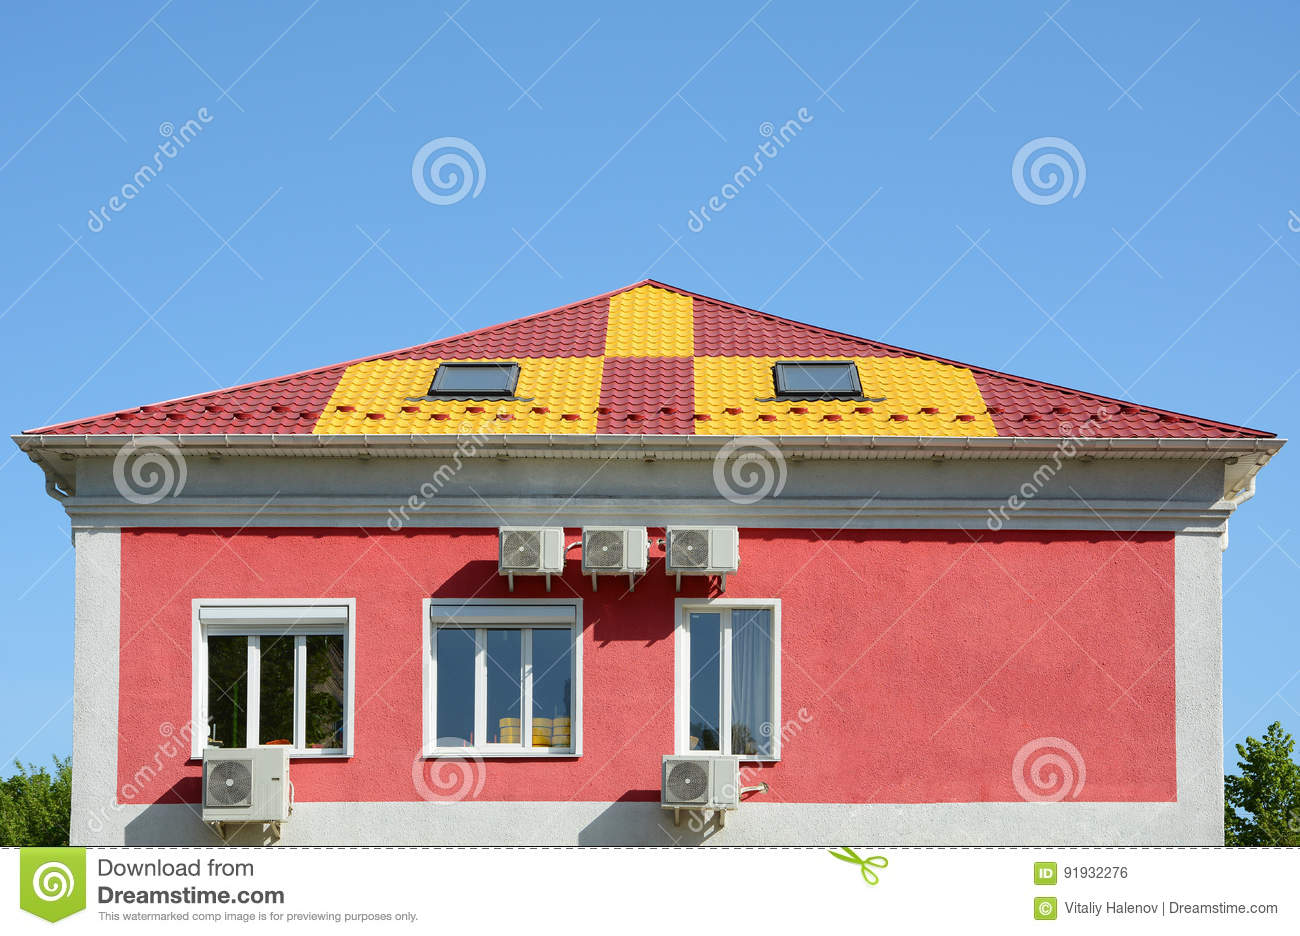 Metal Roofing Construction House With A Mansard And Skylight Windows Rain Gutter And Snow Guard A Multi Colored Metal Roof Stock Photo Image Of Guard Rain 91932276